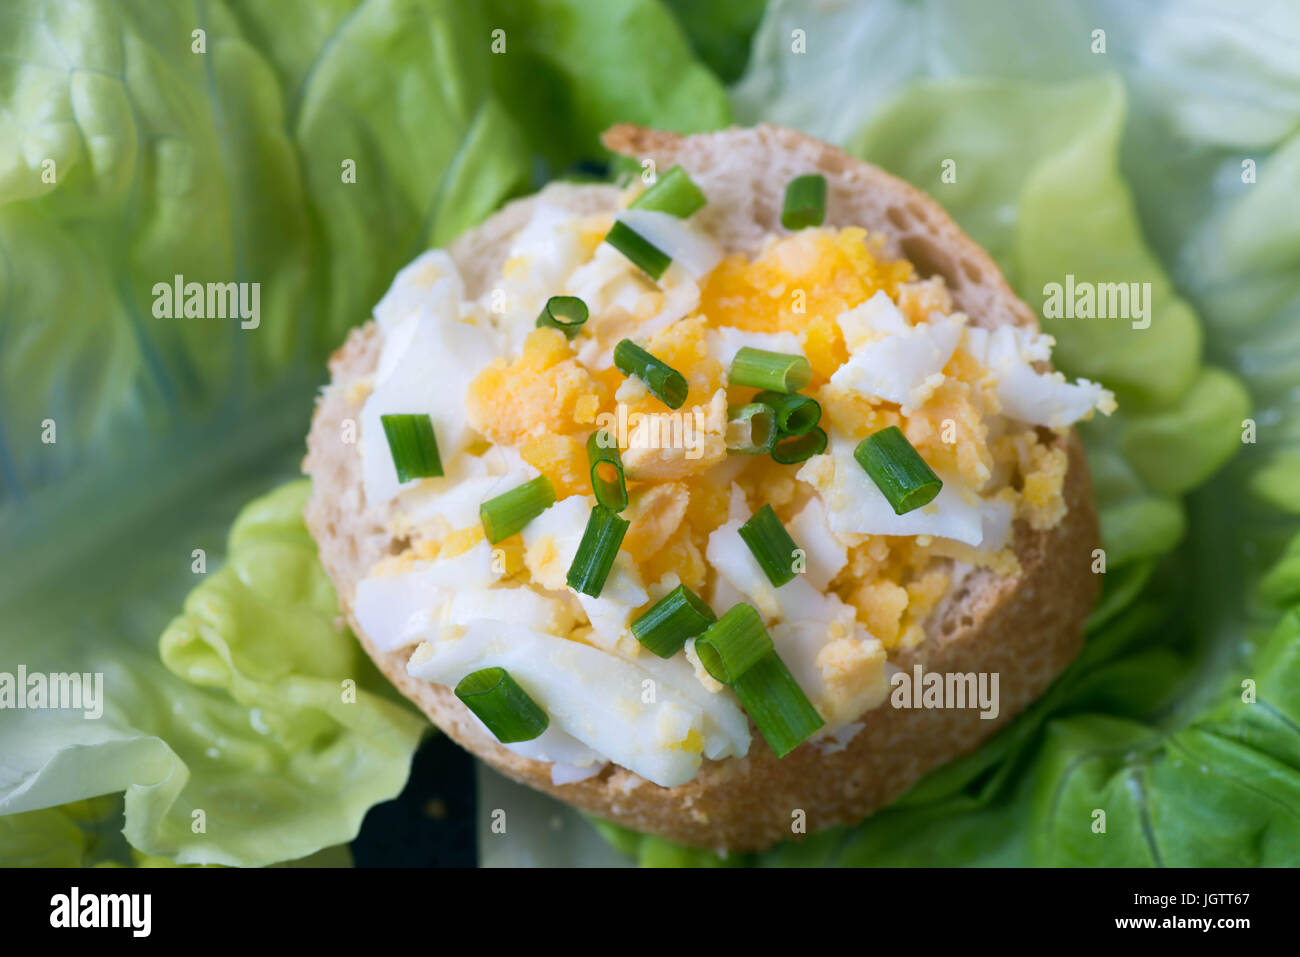 healthy small open sandwich with egg and chives selective focus macro - Stock Image